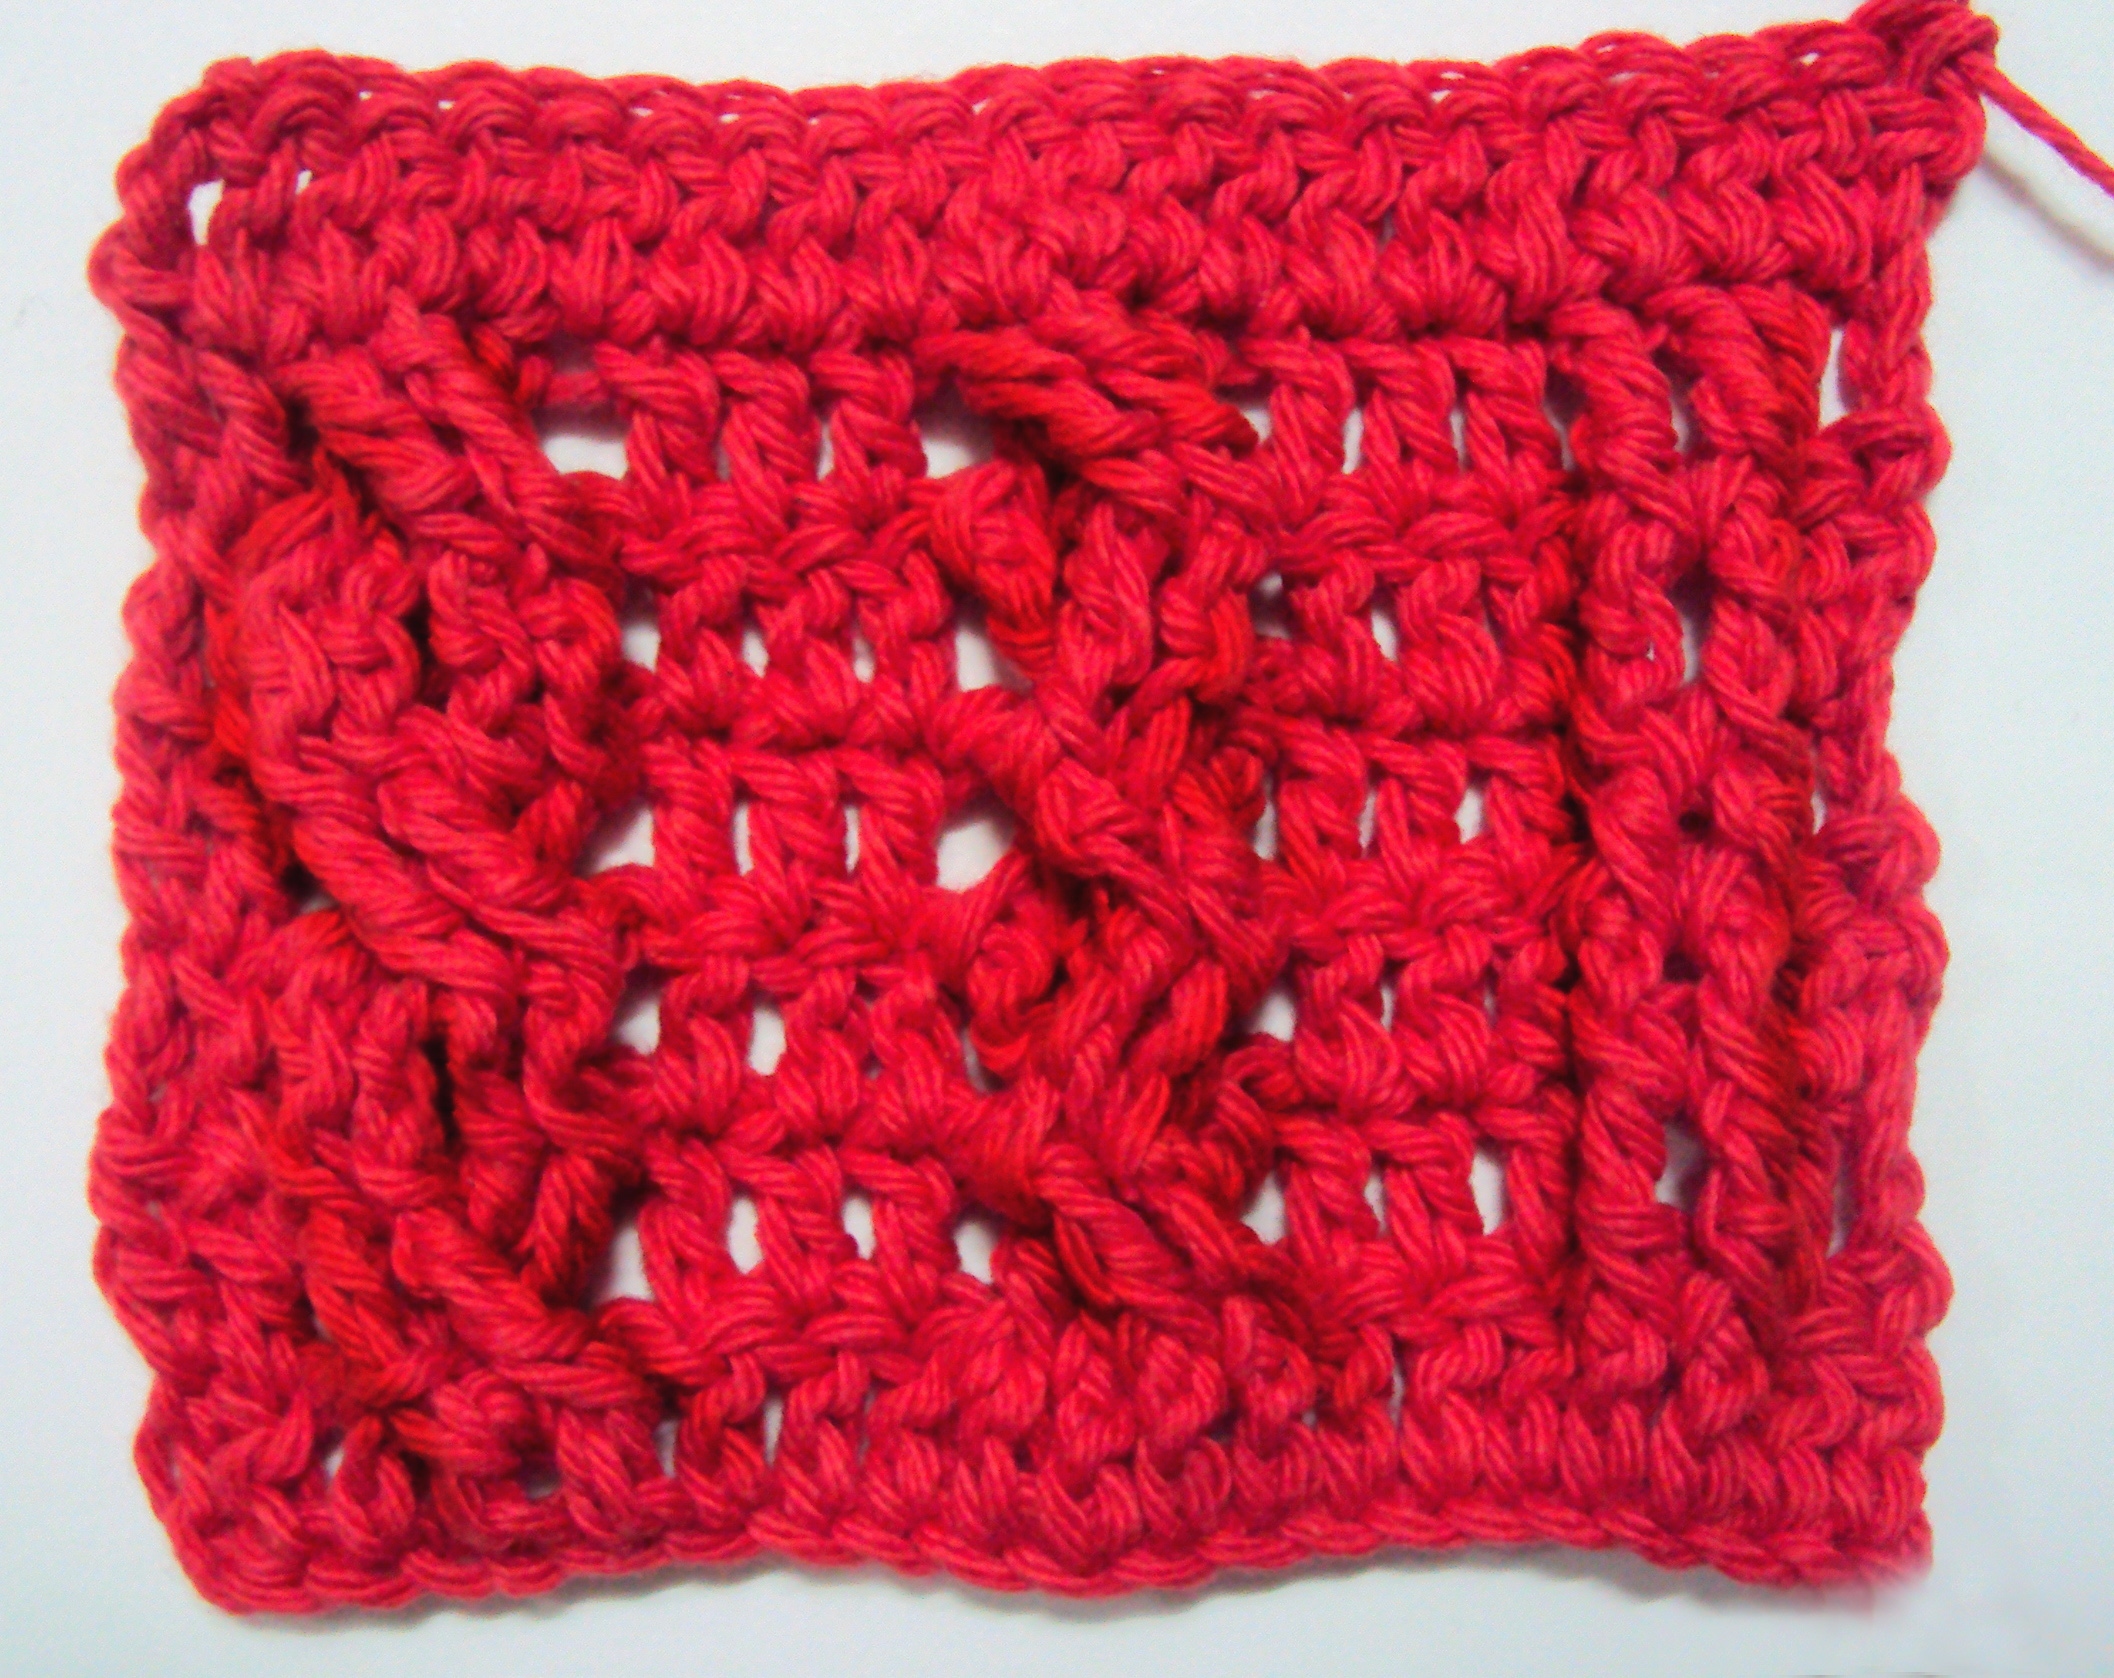 Crochet Stitches With Images : ... How to Crochet: Cable Stitches - Crochet Patterns, Tutorials and News